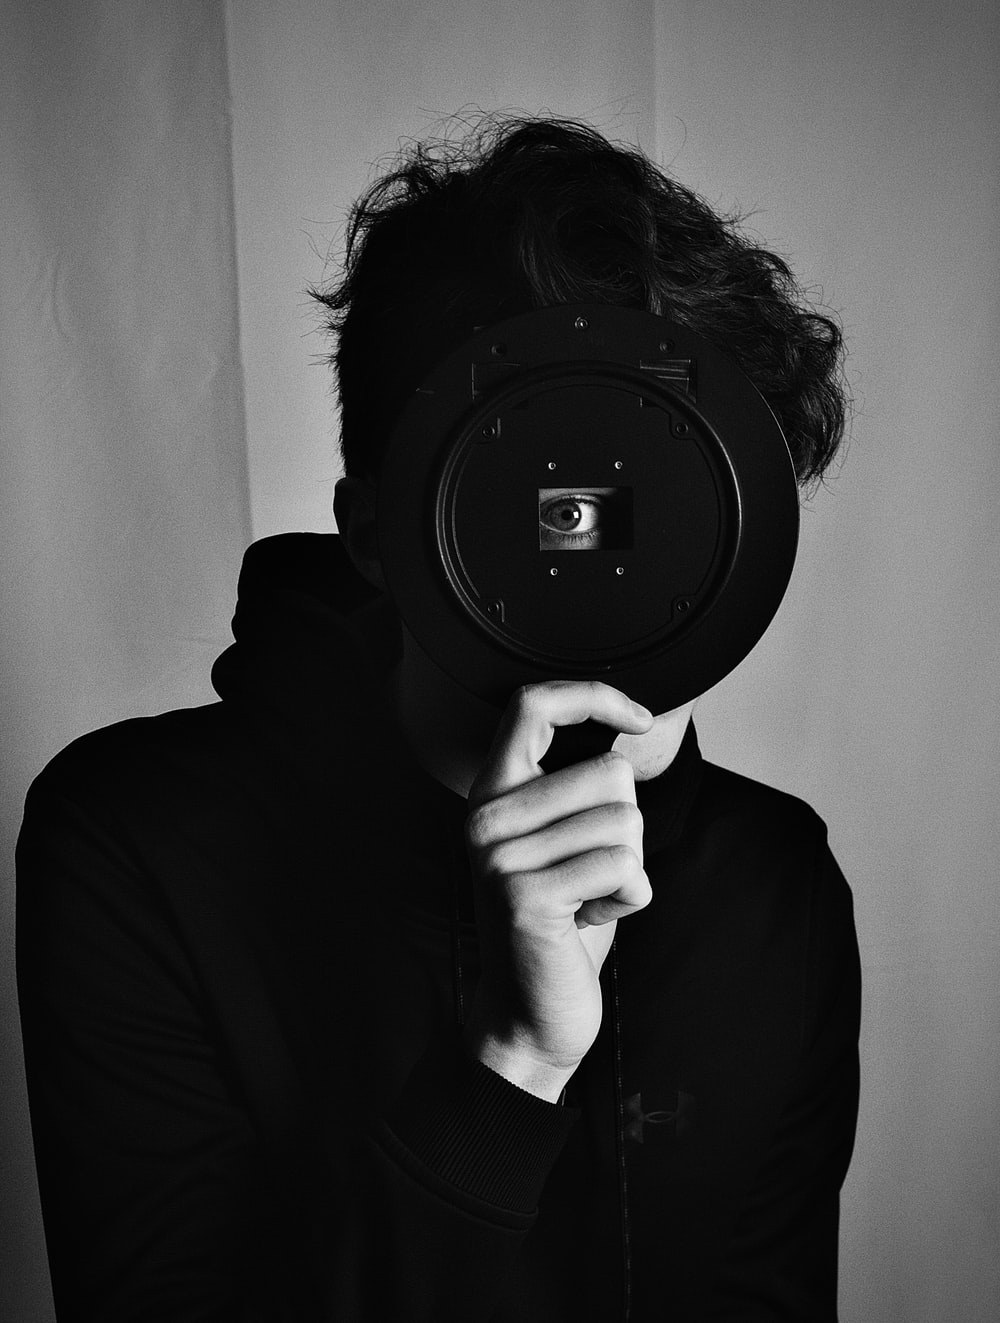 grayscale photo of person holding camera lens